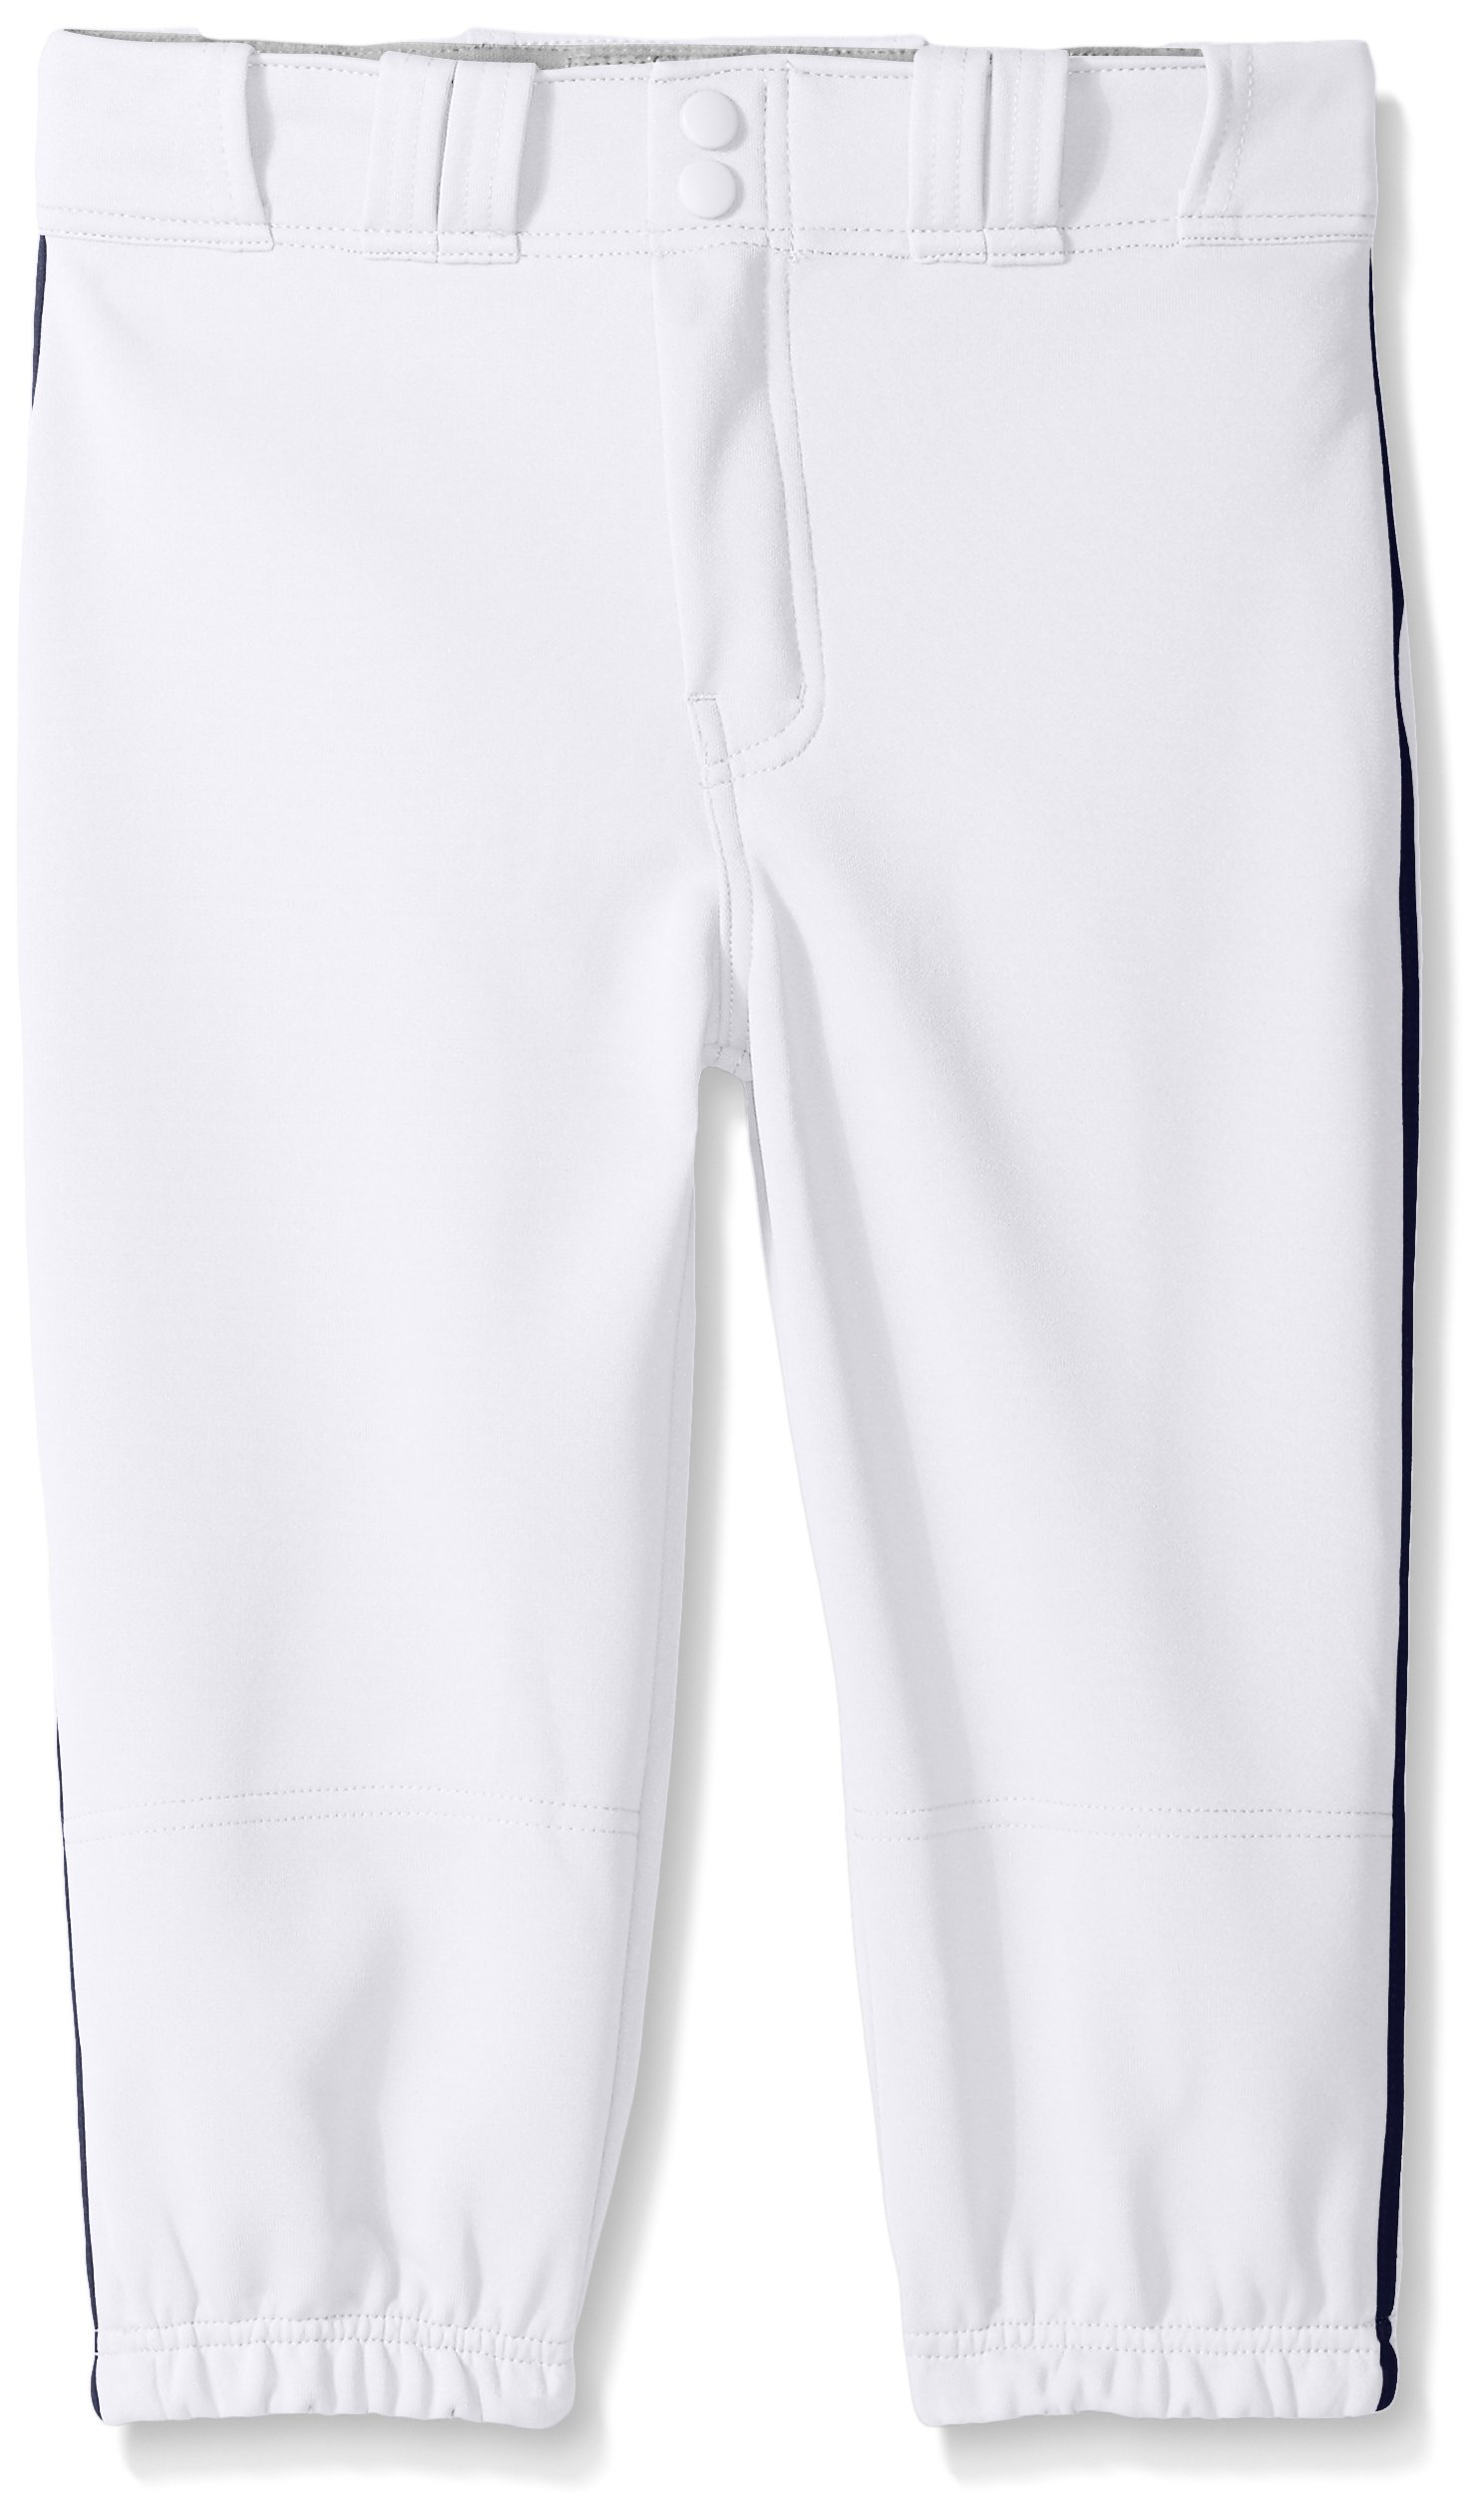 Easton Boys PRO Plus Piped Knicker, White/Navy, Small